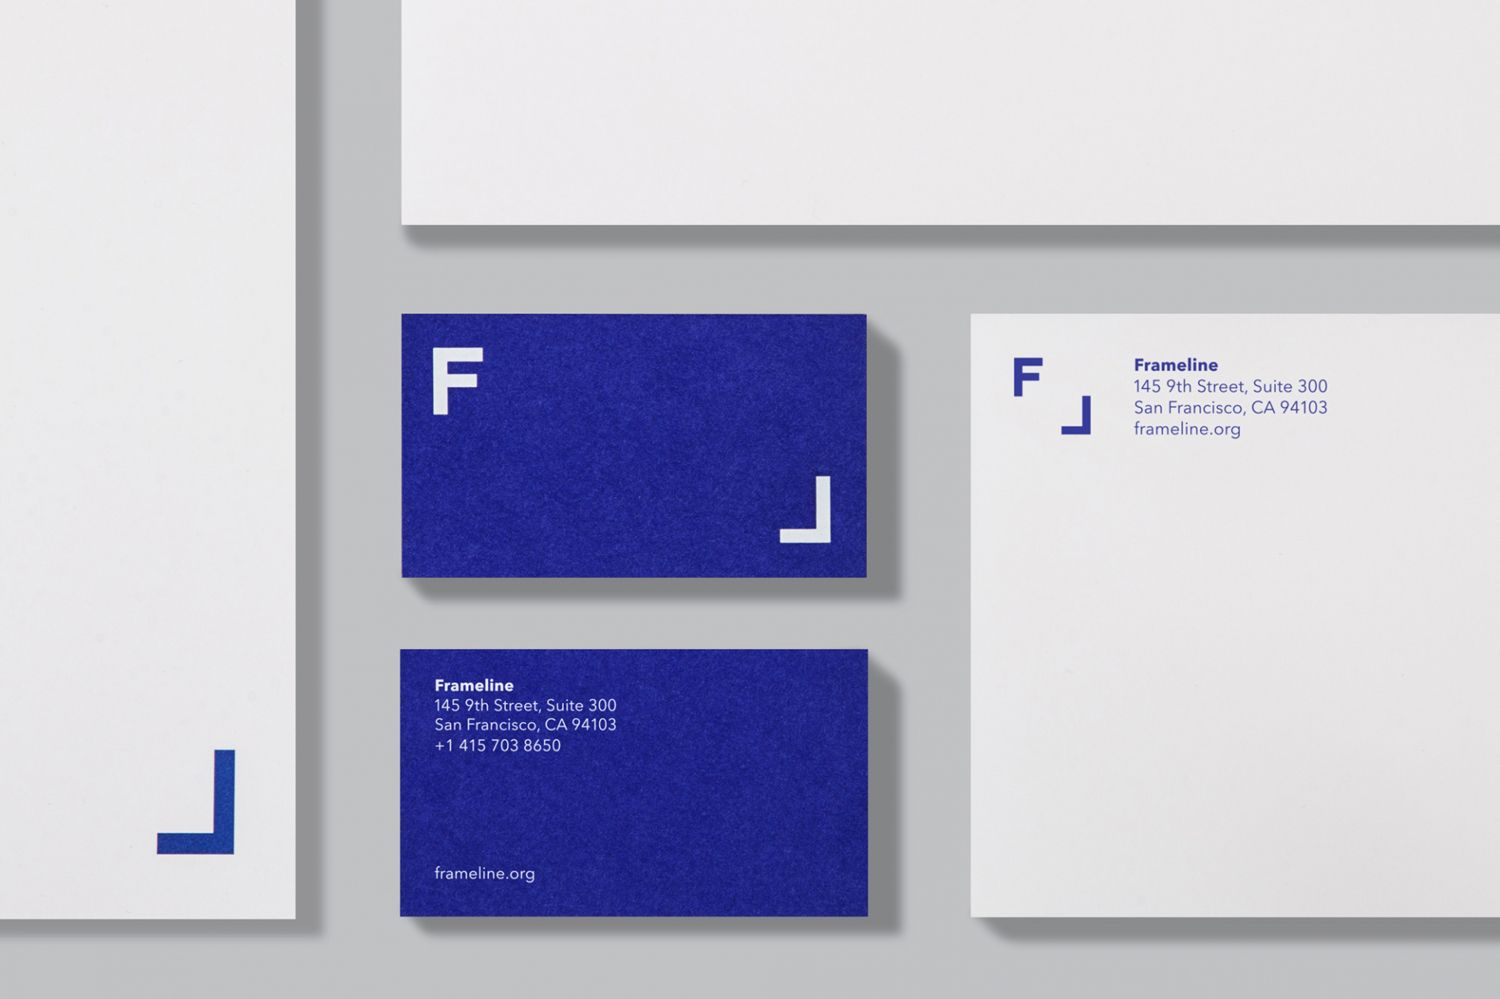 Best Business Card Designs, Inspiration & Gallery — BP&O | lGBT ...